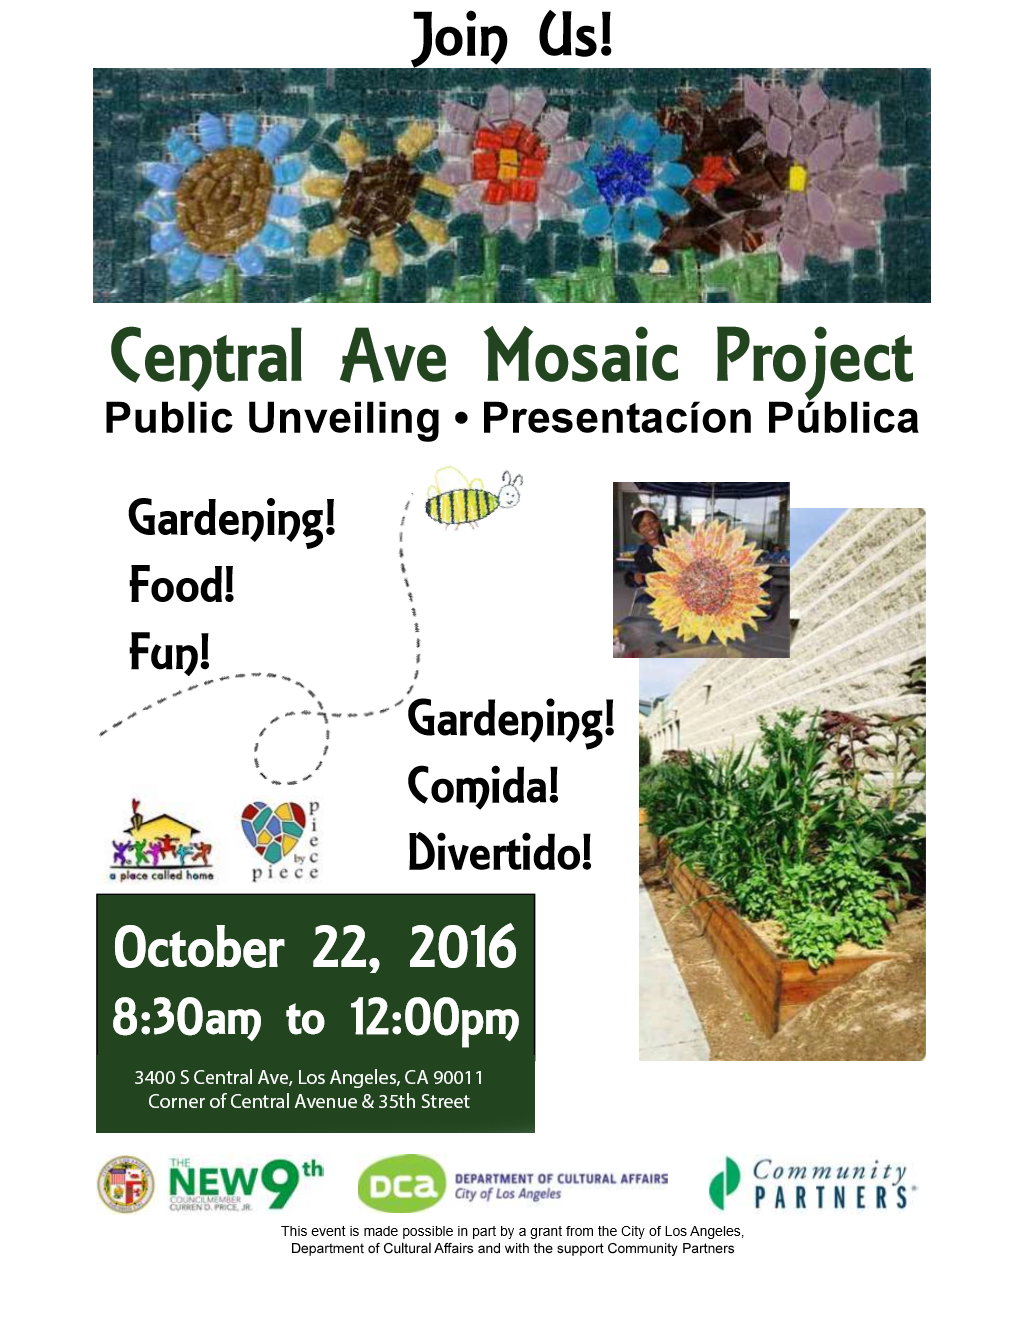 Central Ave Garden Mosaic Project celebration will take place at the Community Garden, located on south side of the Newton Police Station at Central and 35th in South Los Angeles (  3400 S Central Ave, Los Angeles, CA 90011)